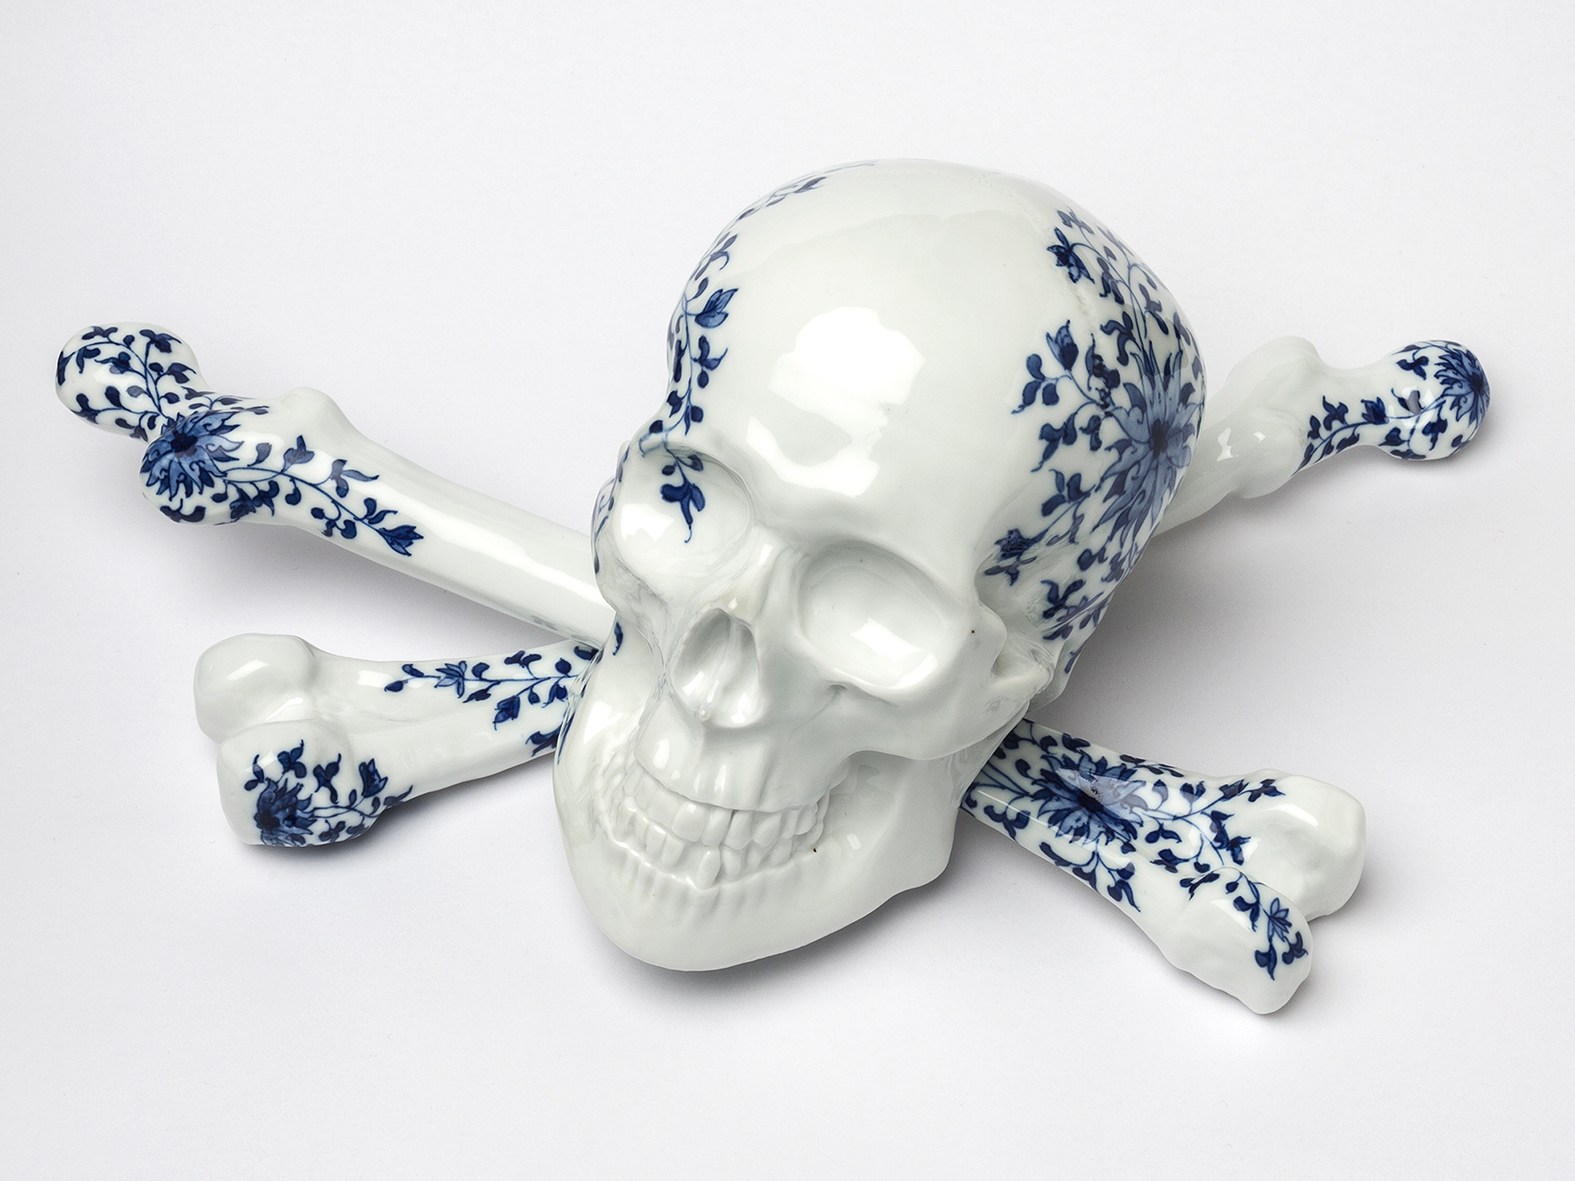 Untitled (cobalt skull),  Andrew Nicholls in  collaboration with Yu Xuan and Jingdezhen artisans,hand painted cobalt on porcelain, 30 x 35 x 35 cm, 2016. Photograph by Bewley Shaylor.